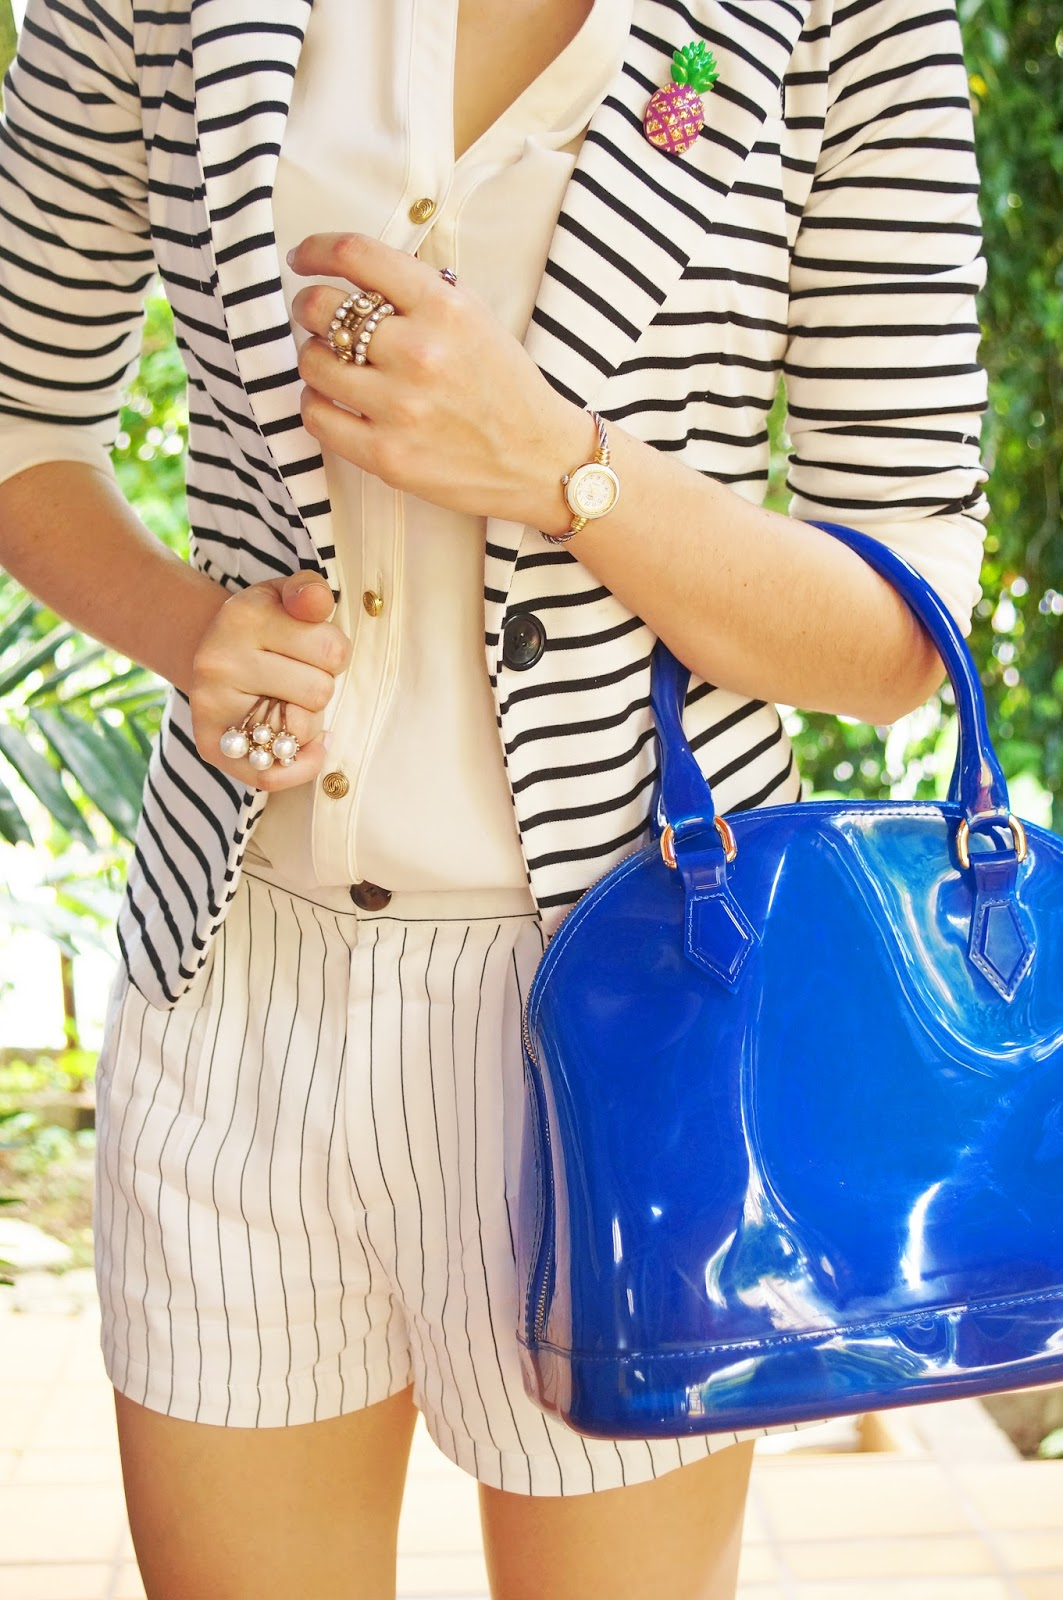 Stripes and Pineapples all in one outfit?! What could be better!